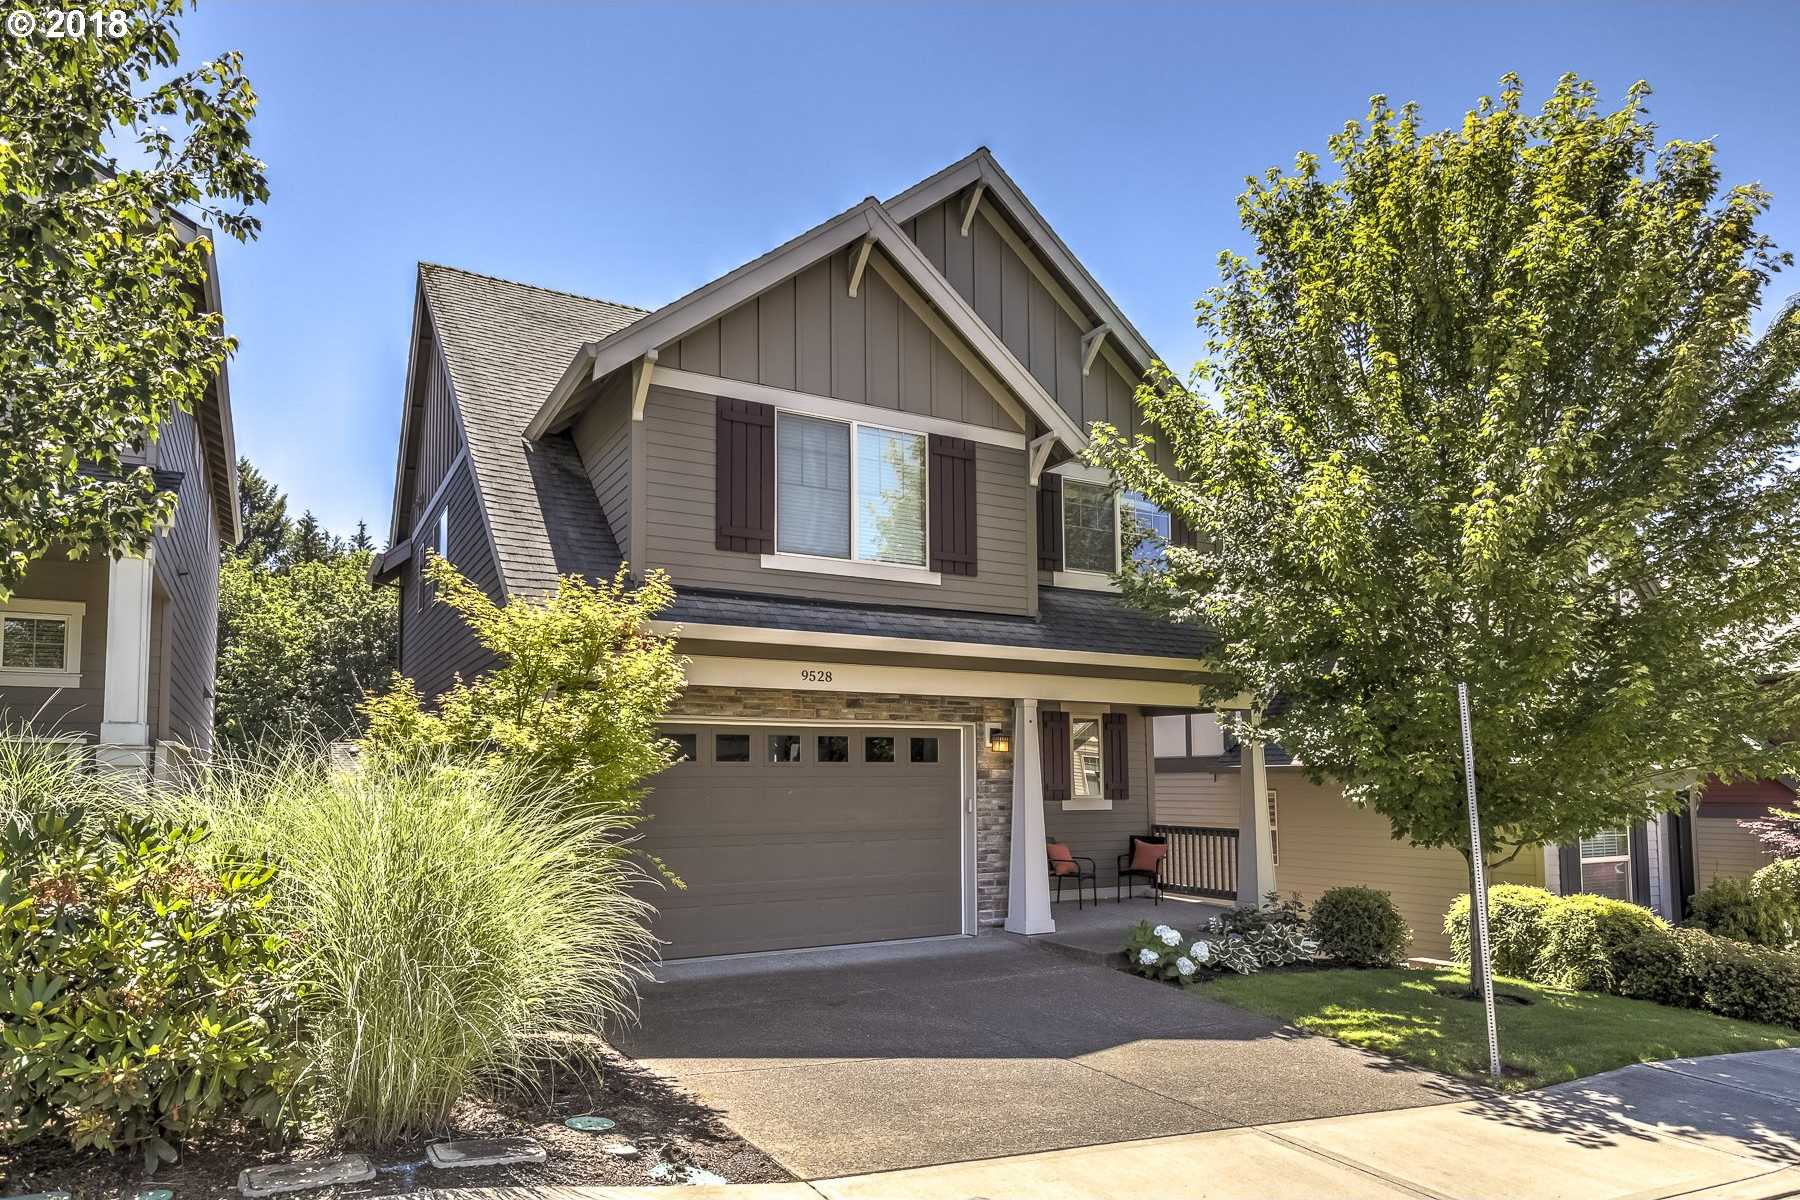 $585,000 - 5Br/4Ba -  for Sale in Portland